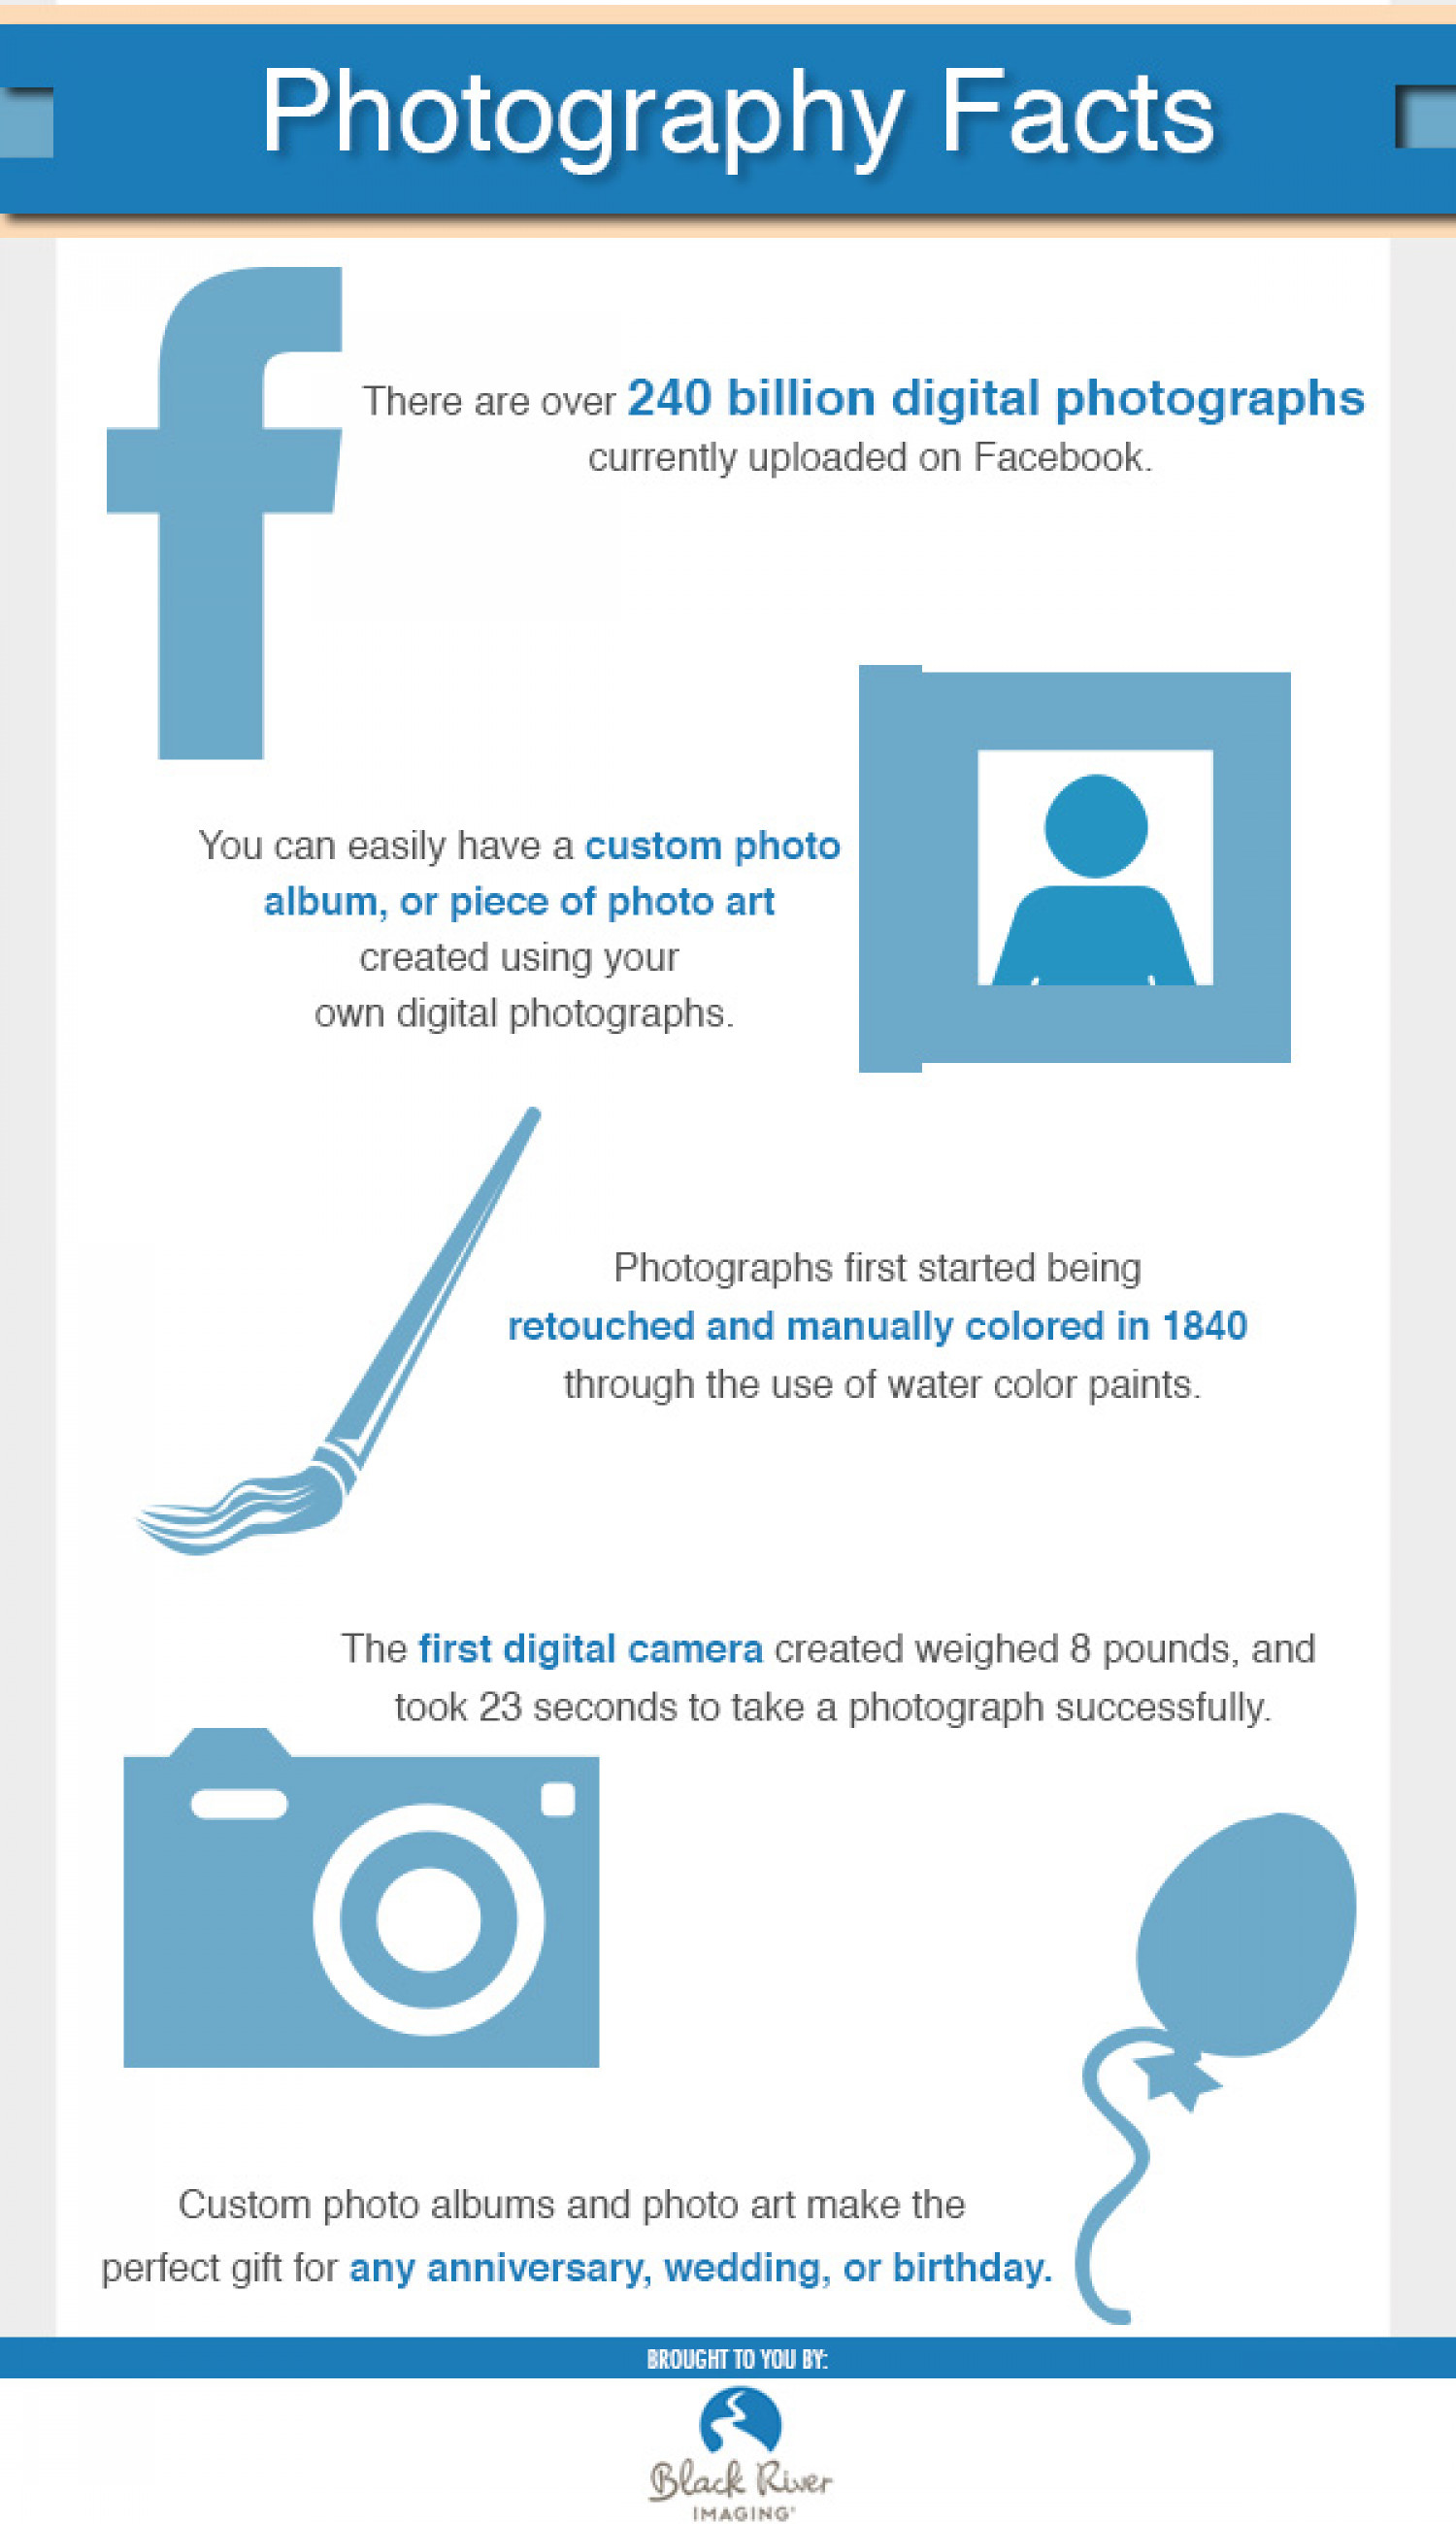 Photography Facts Infographic